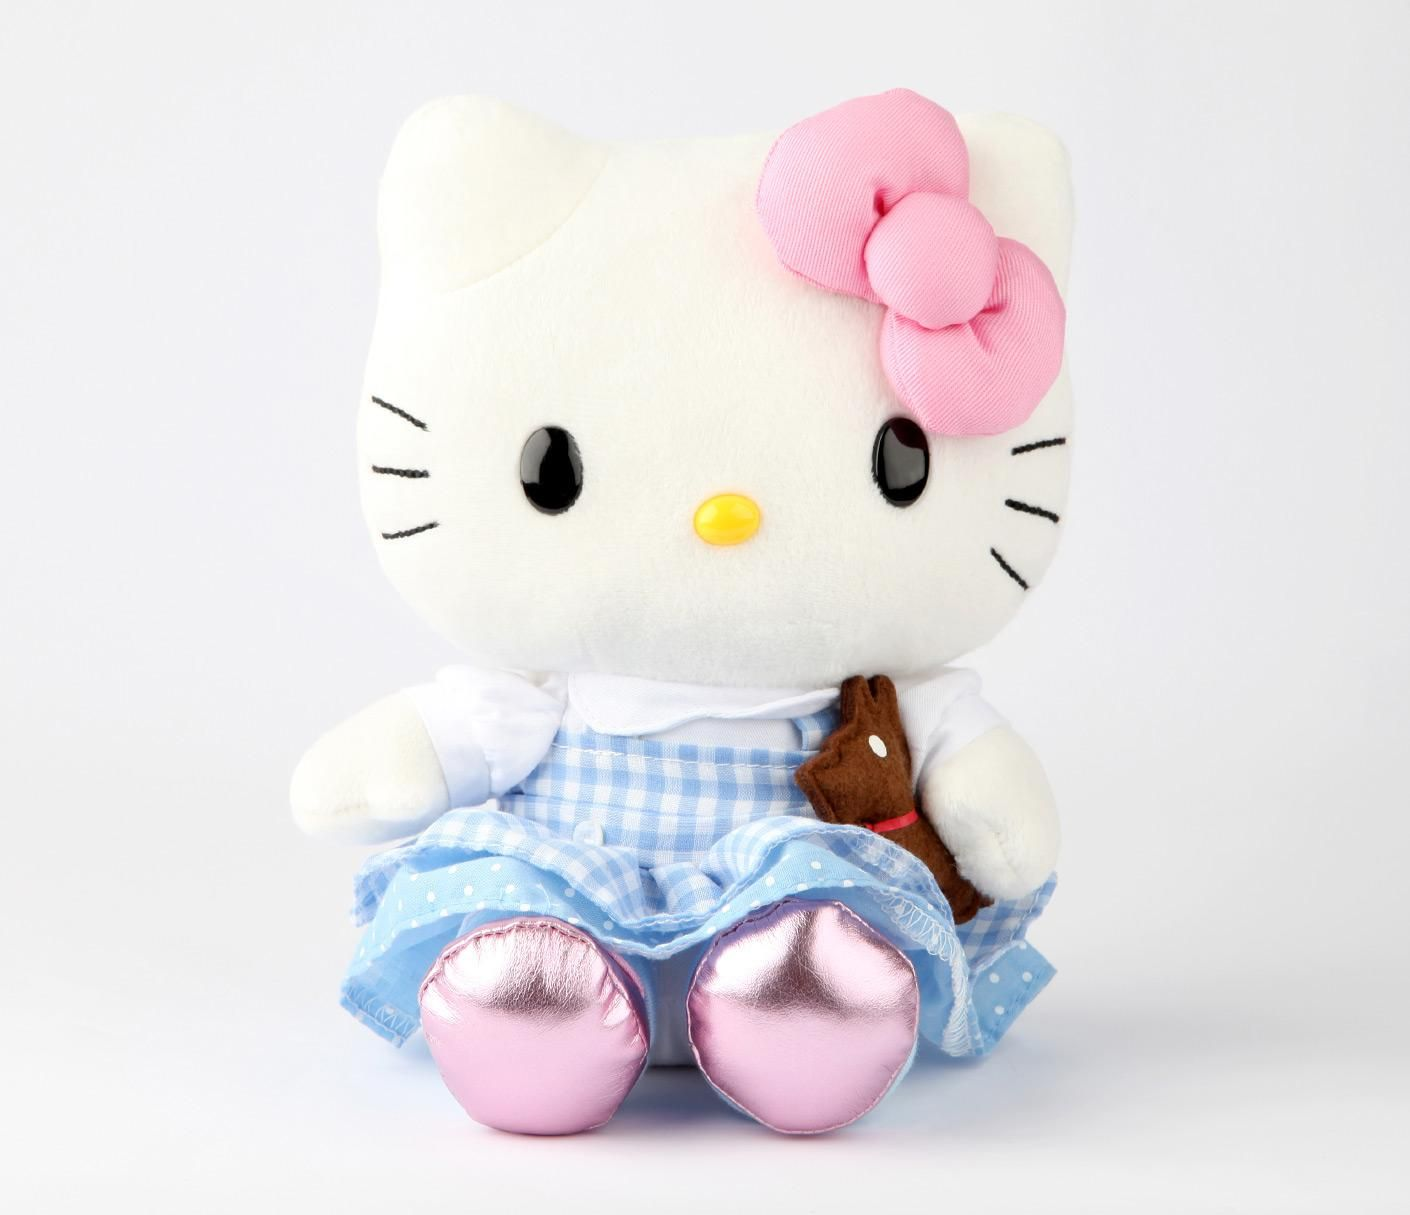 There's no place like home for Hello Kitty!